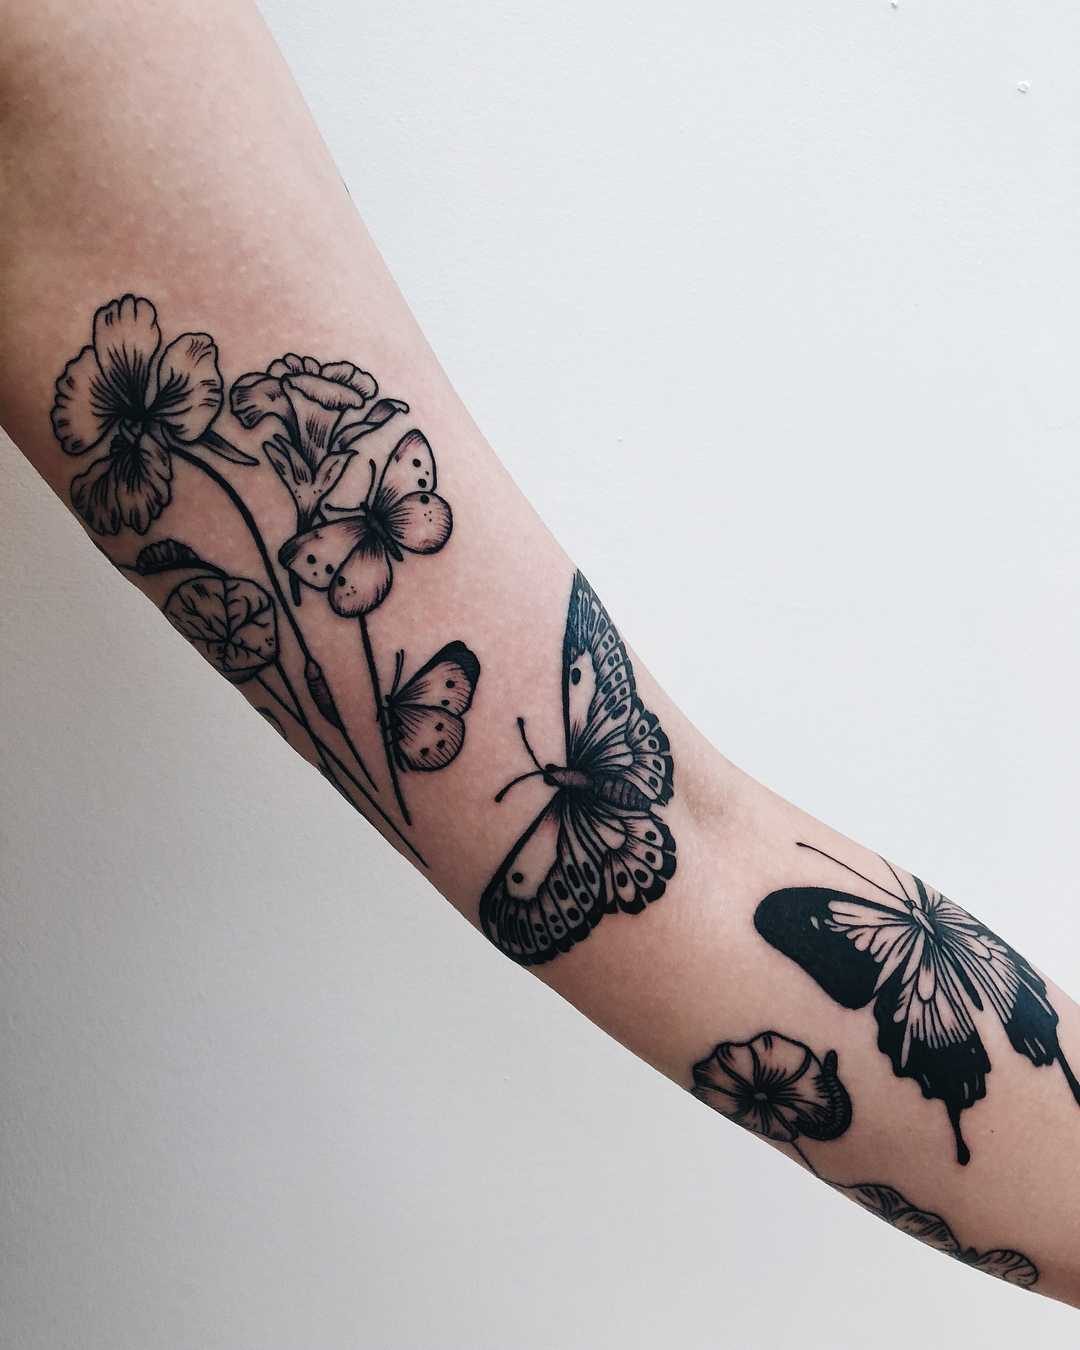 Botanical tattoos by Finley Jordan